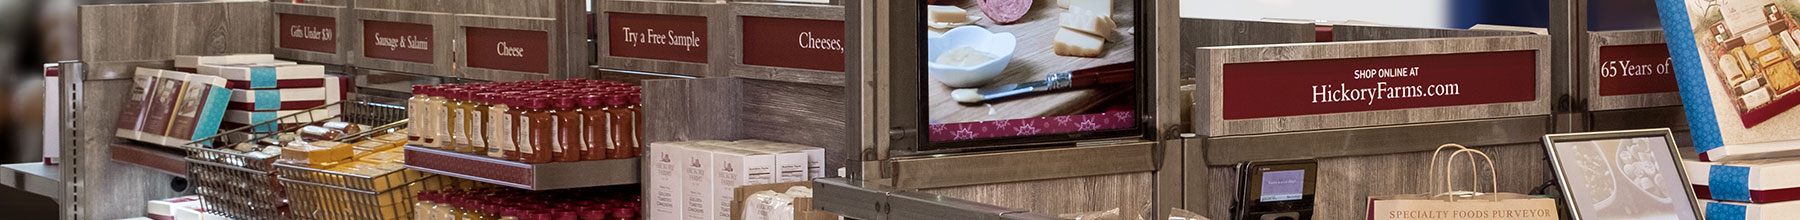 Find a Hickory Farms Store Location